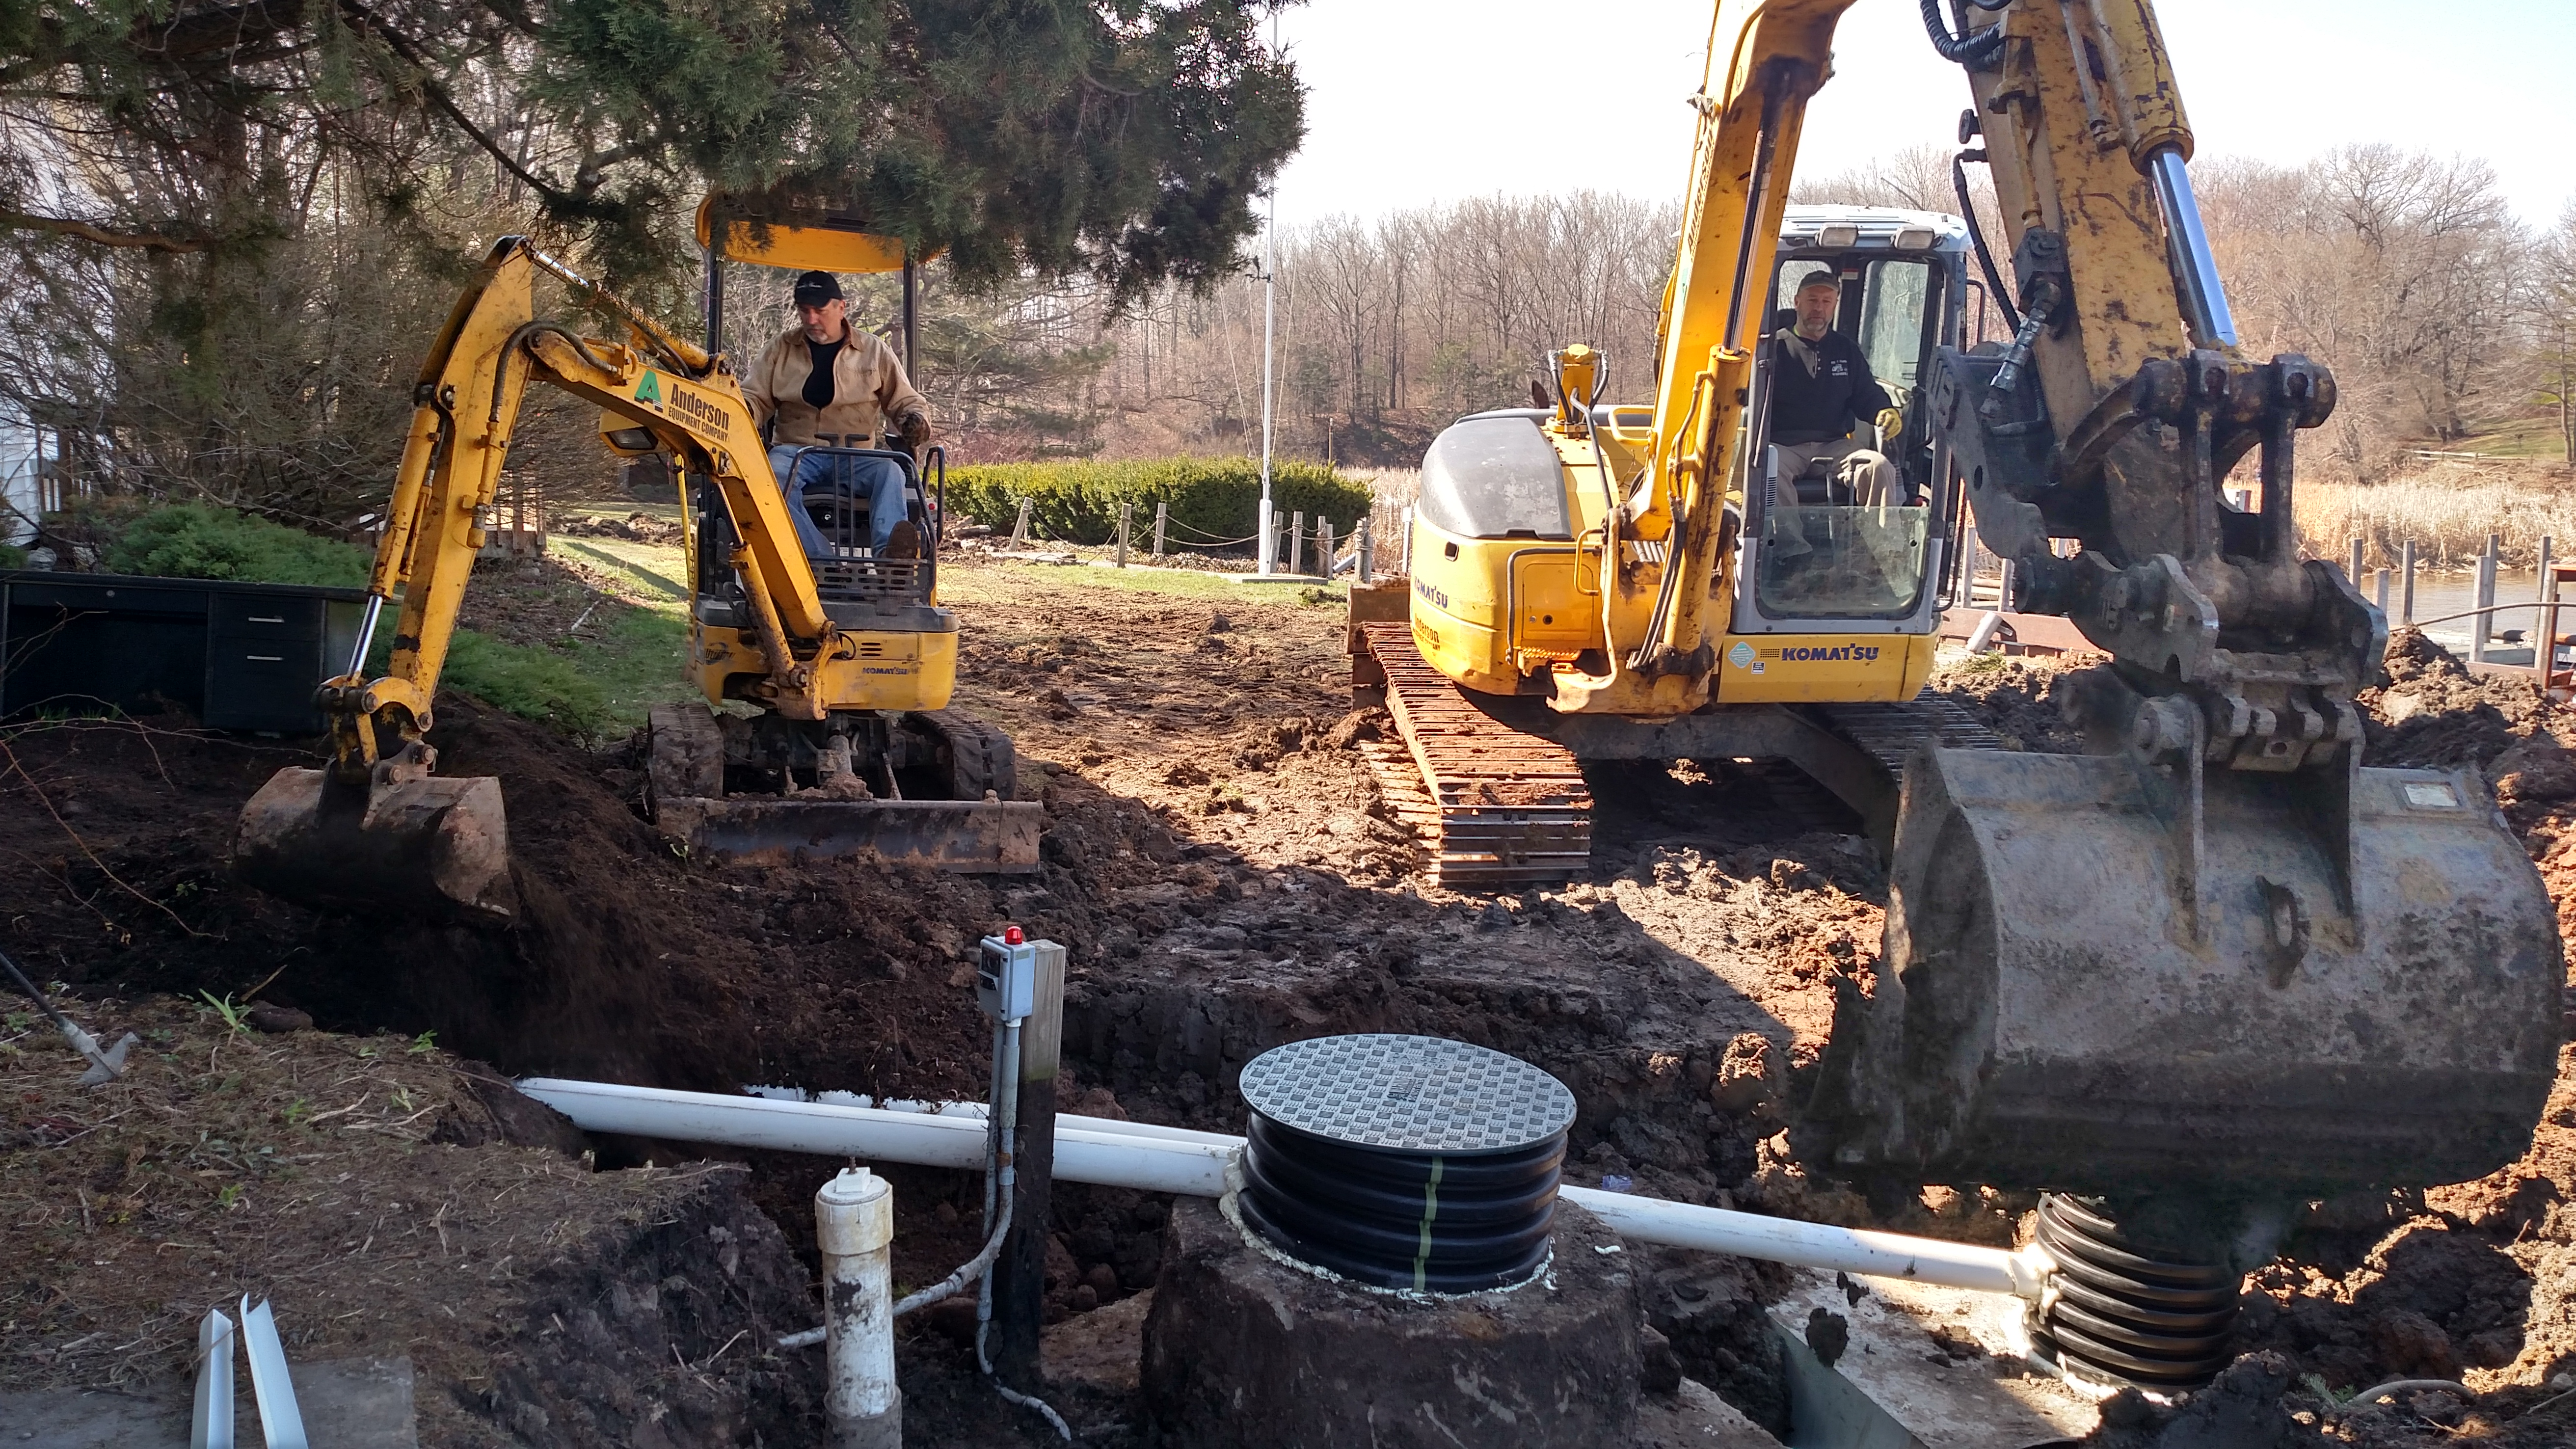 Installing New Septic System - Bootleggers Cove Renovation Project